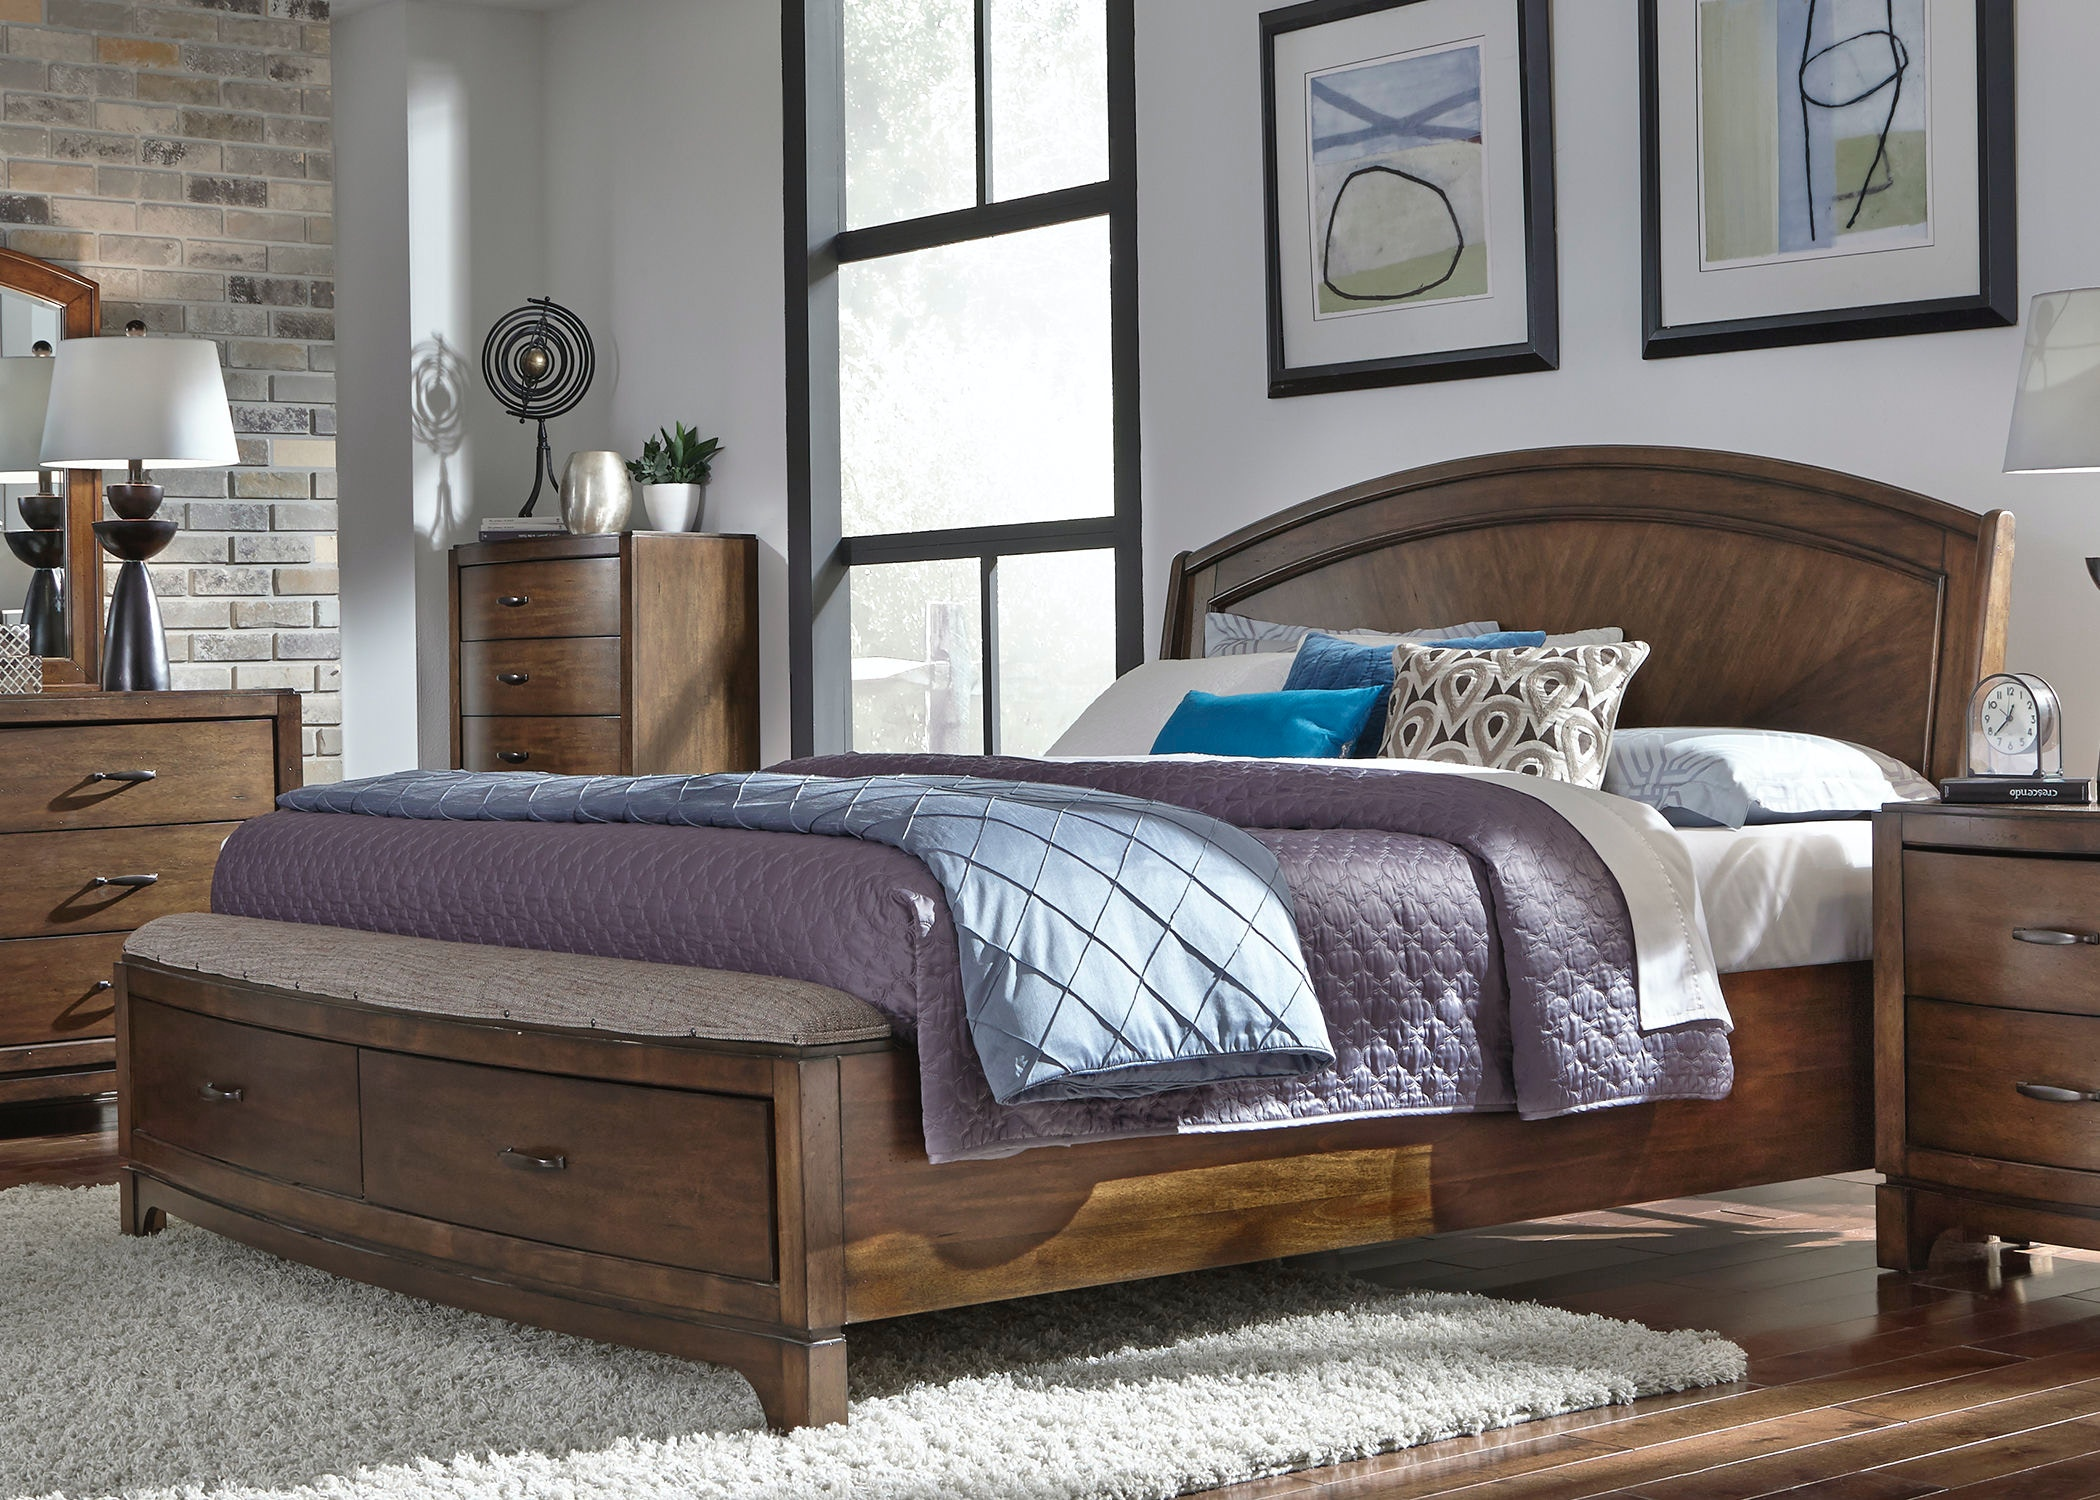 Merveilleux Liberty Furniture Bedroom King Panel Storage Bed